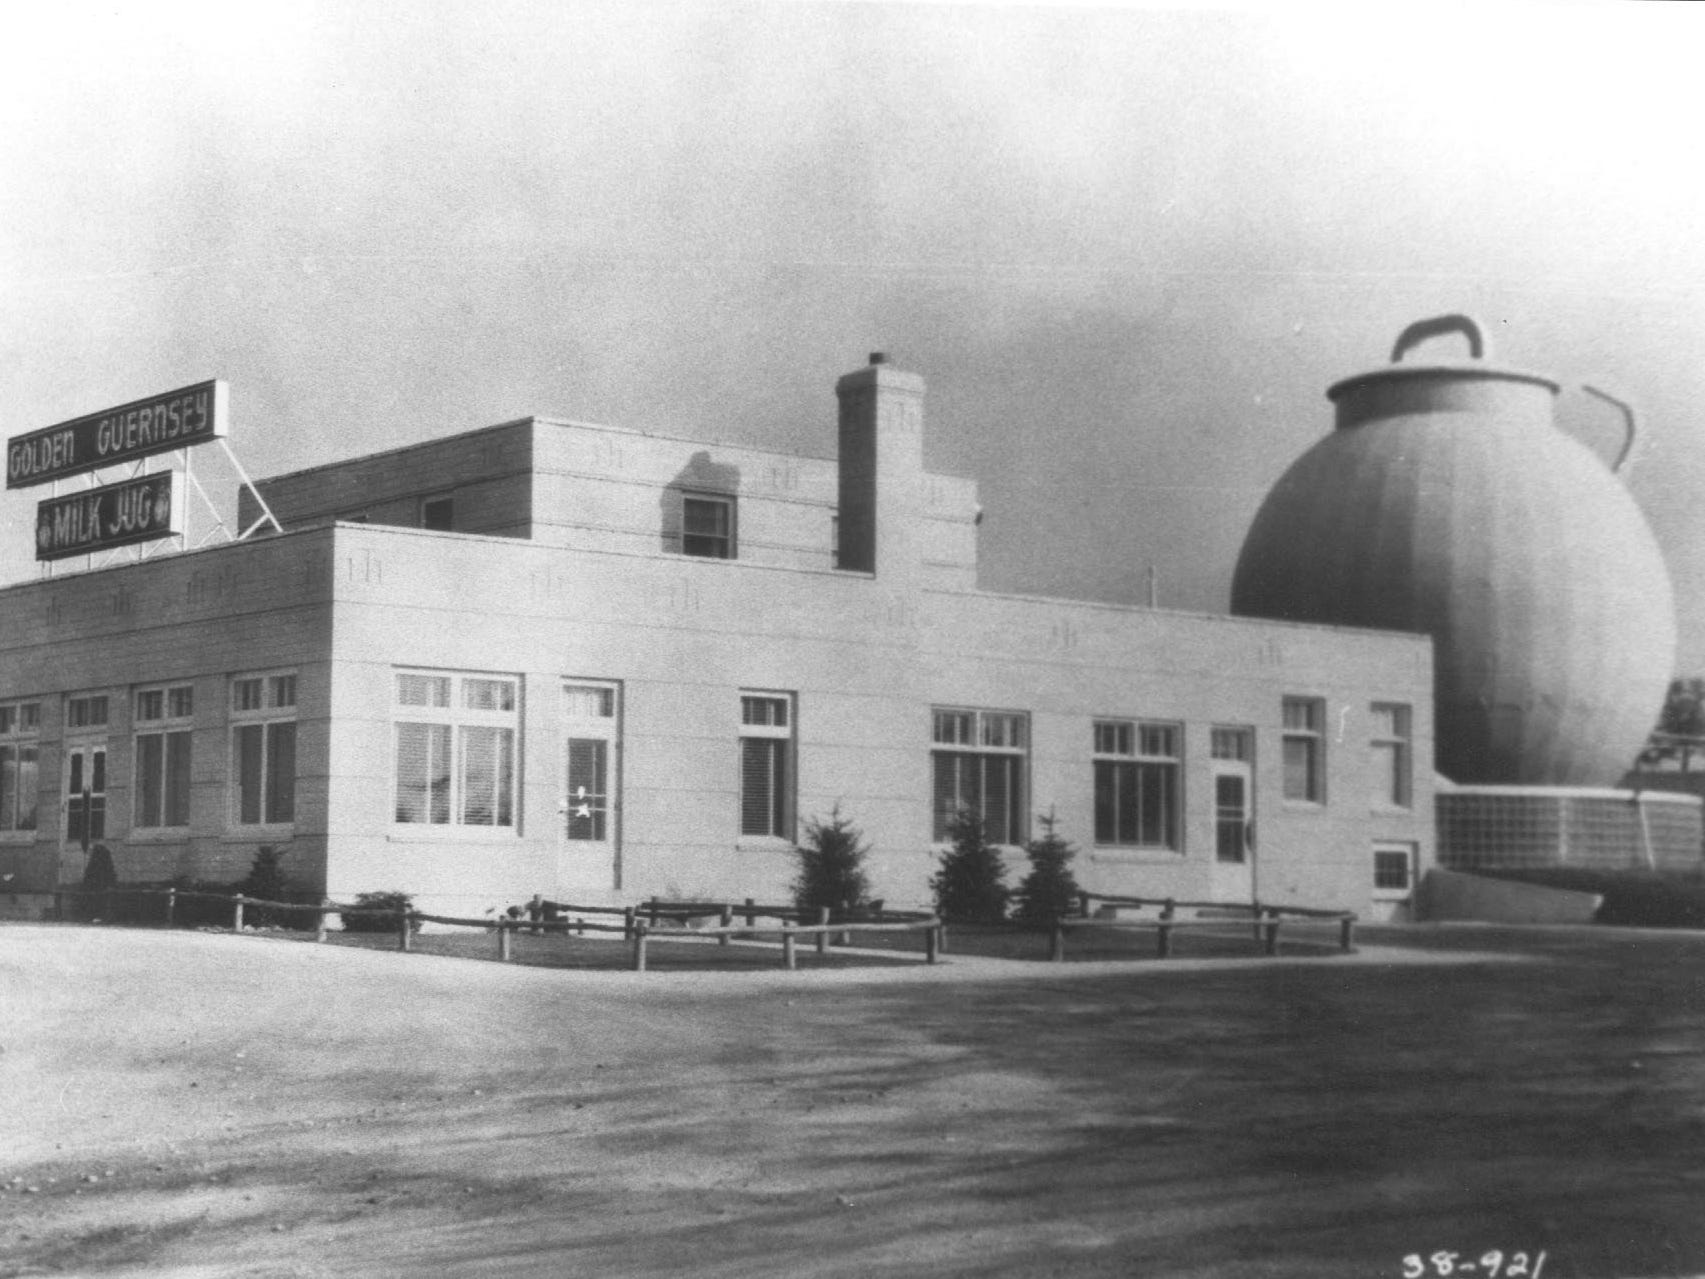 Circa 1945: The Golden Gurnsey Milk Jug on Blue Mound Road in Waukesha originally housed a restaurant and the large milk jug was an actual working barn. The building was open from the late 1930s to the early 1960s.